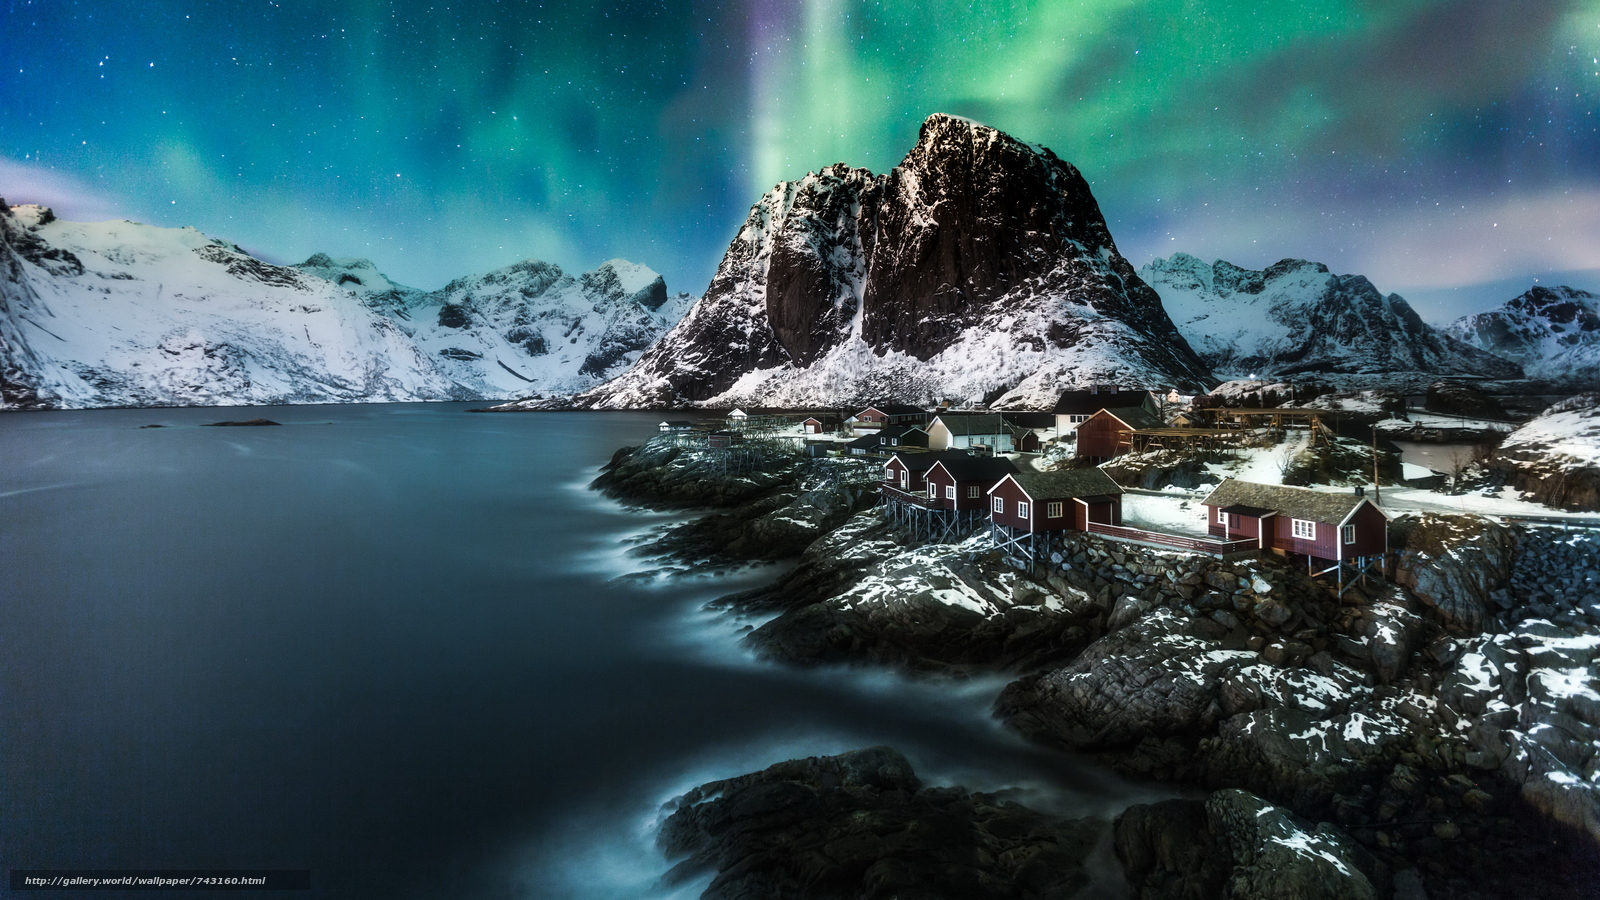 Lofoten, Norway, Lofoten, island, winter, snow, the mountains, rock, houses, water, sky, landscape, nature, view, Northern Lights, Polar Lights, night, stars, Coast